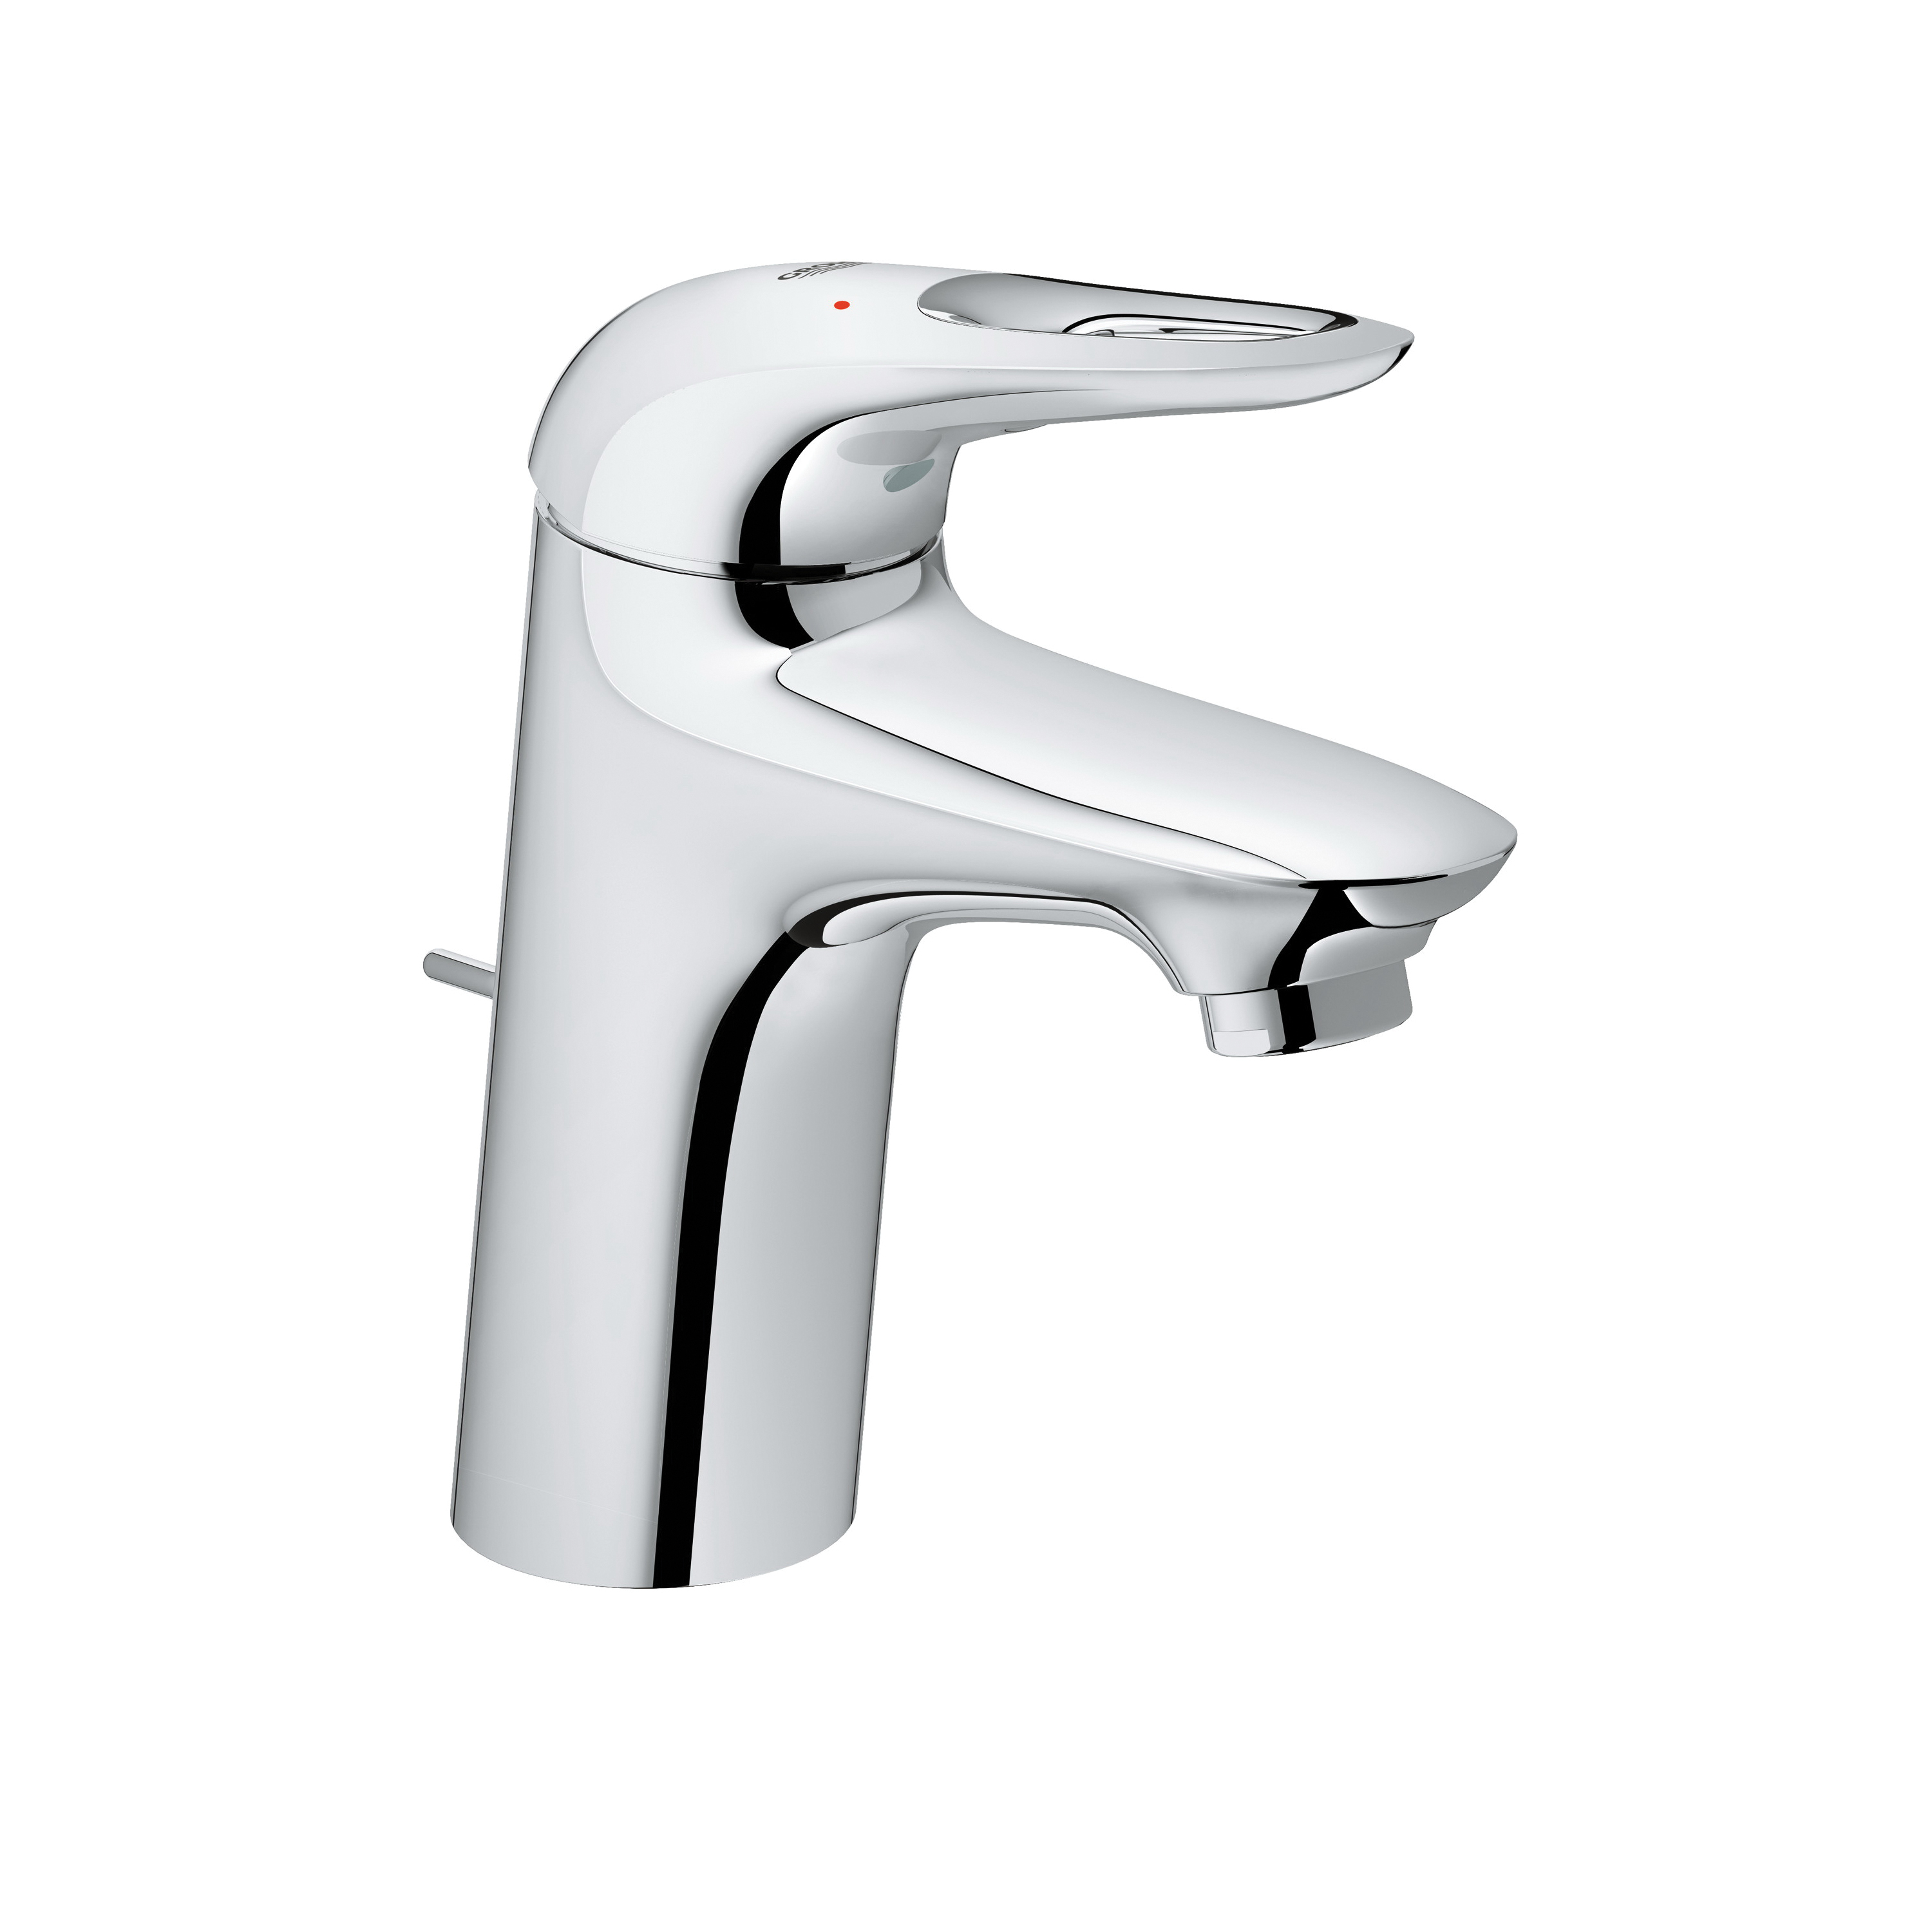 GROHE 23577003 Eurostyle Lavatory Faucet With Temperature Limiter, 1.2 gpm, 8-1/4 in H Spout, 1 Handle, Pop-Up Drain, 1 Faucet Hole, StarLight® Chrome, Import